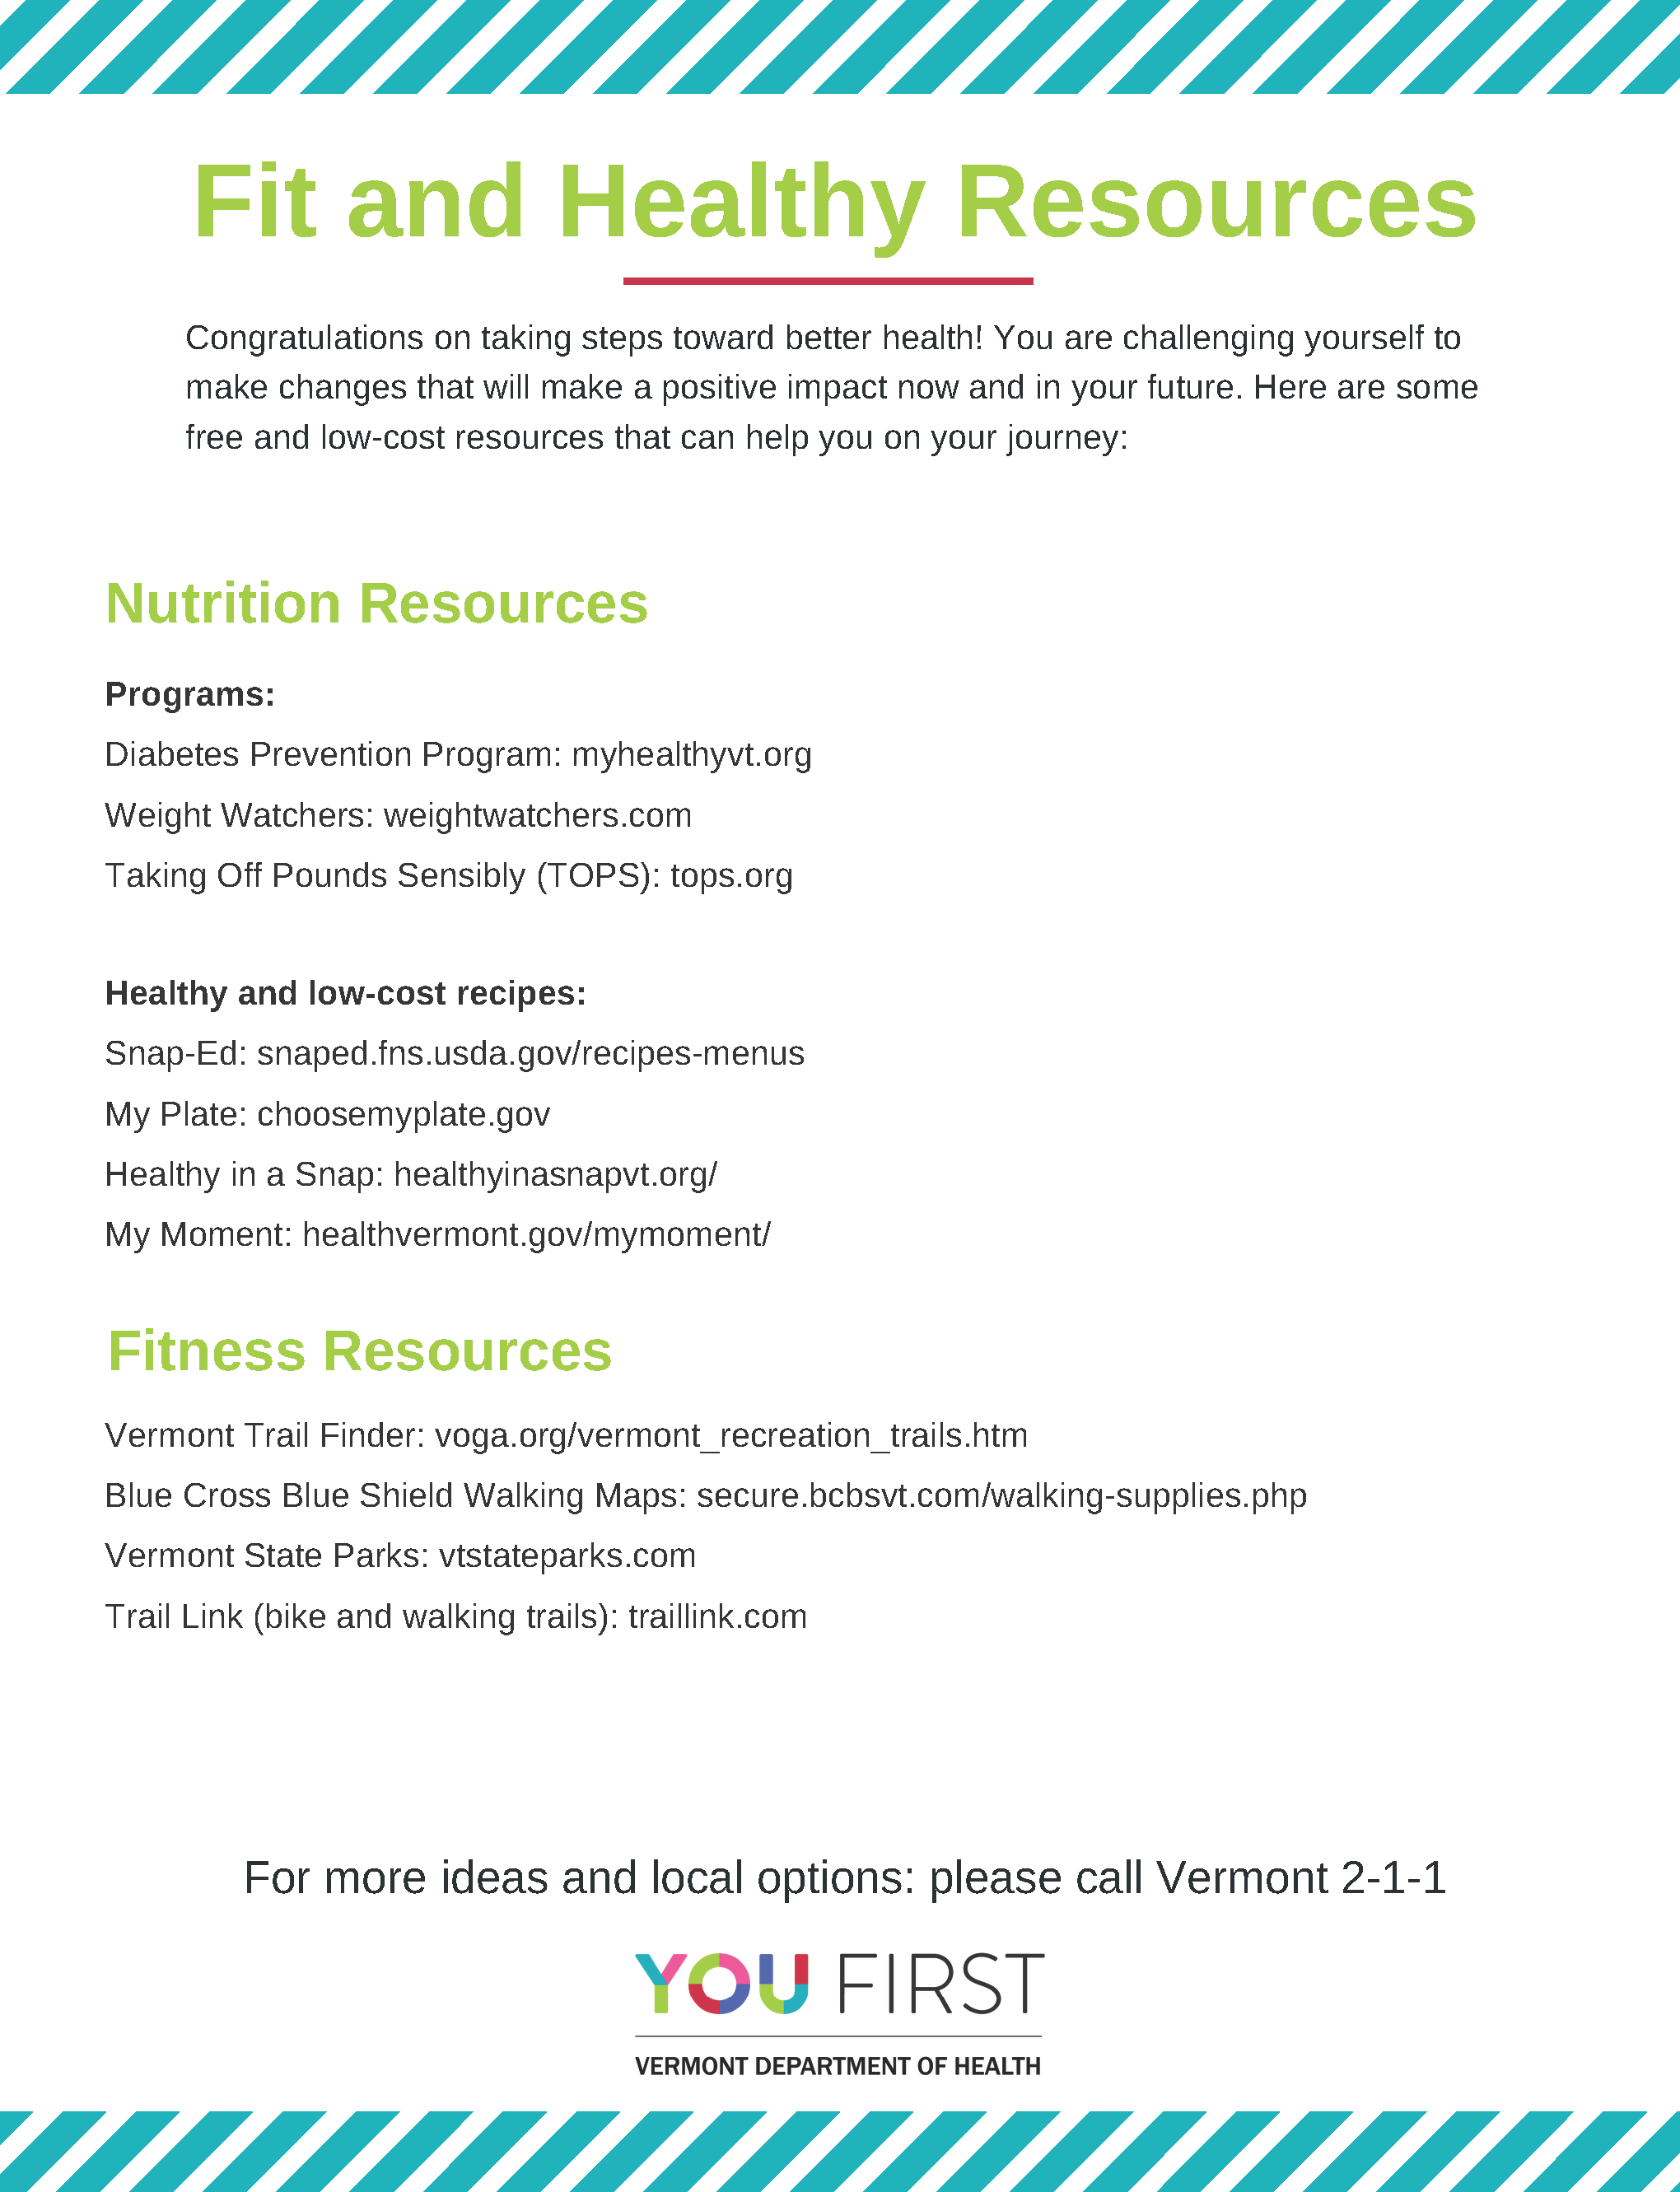 Nutrition and Fitness Resources Handout